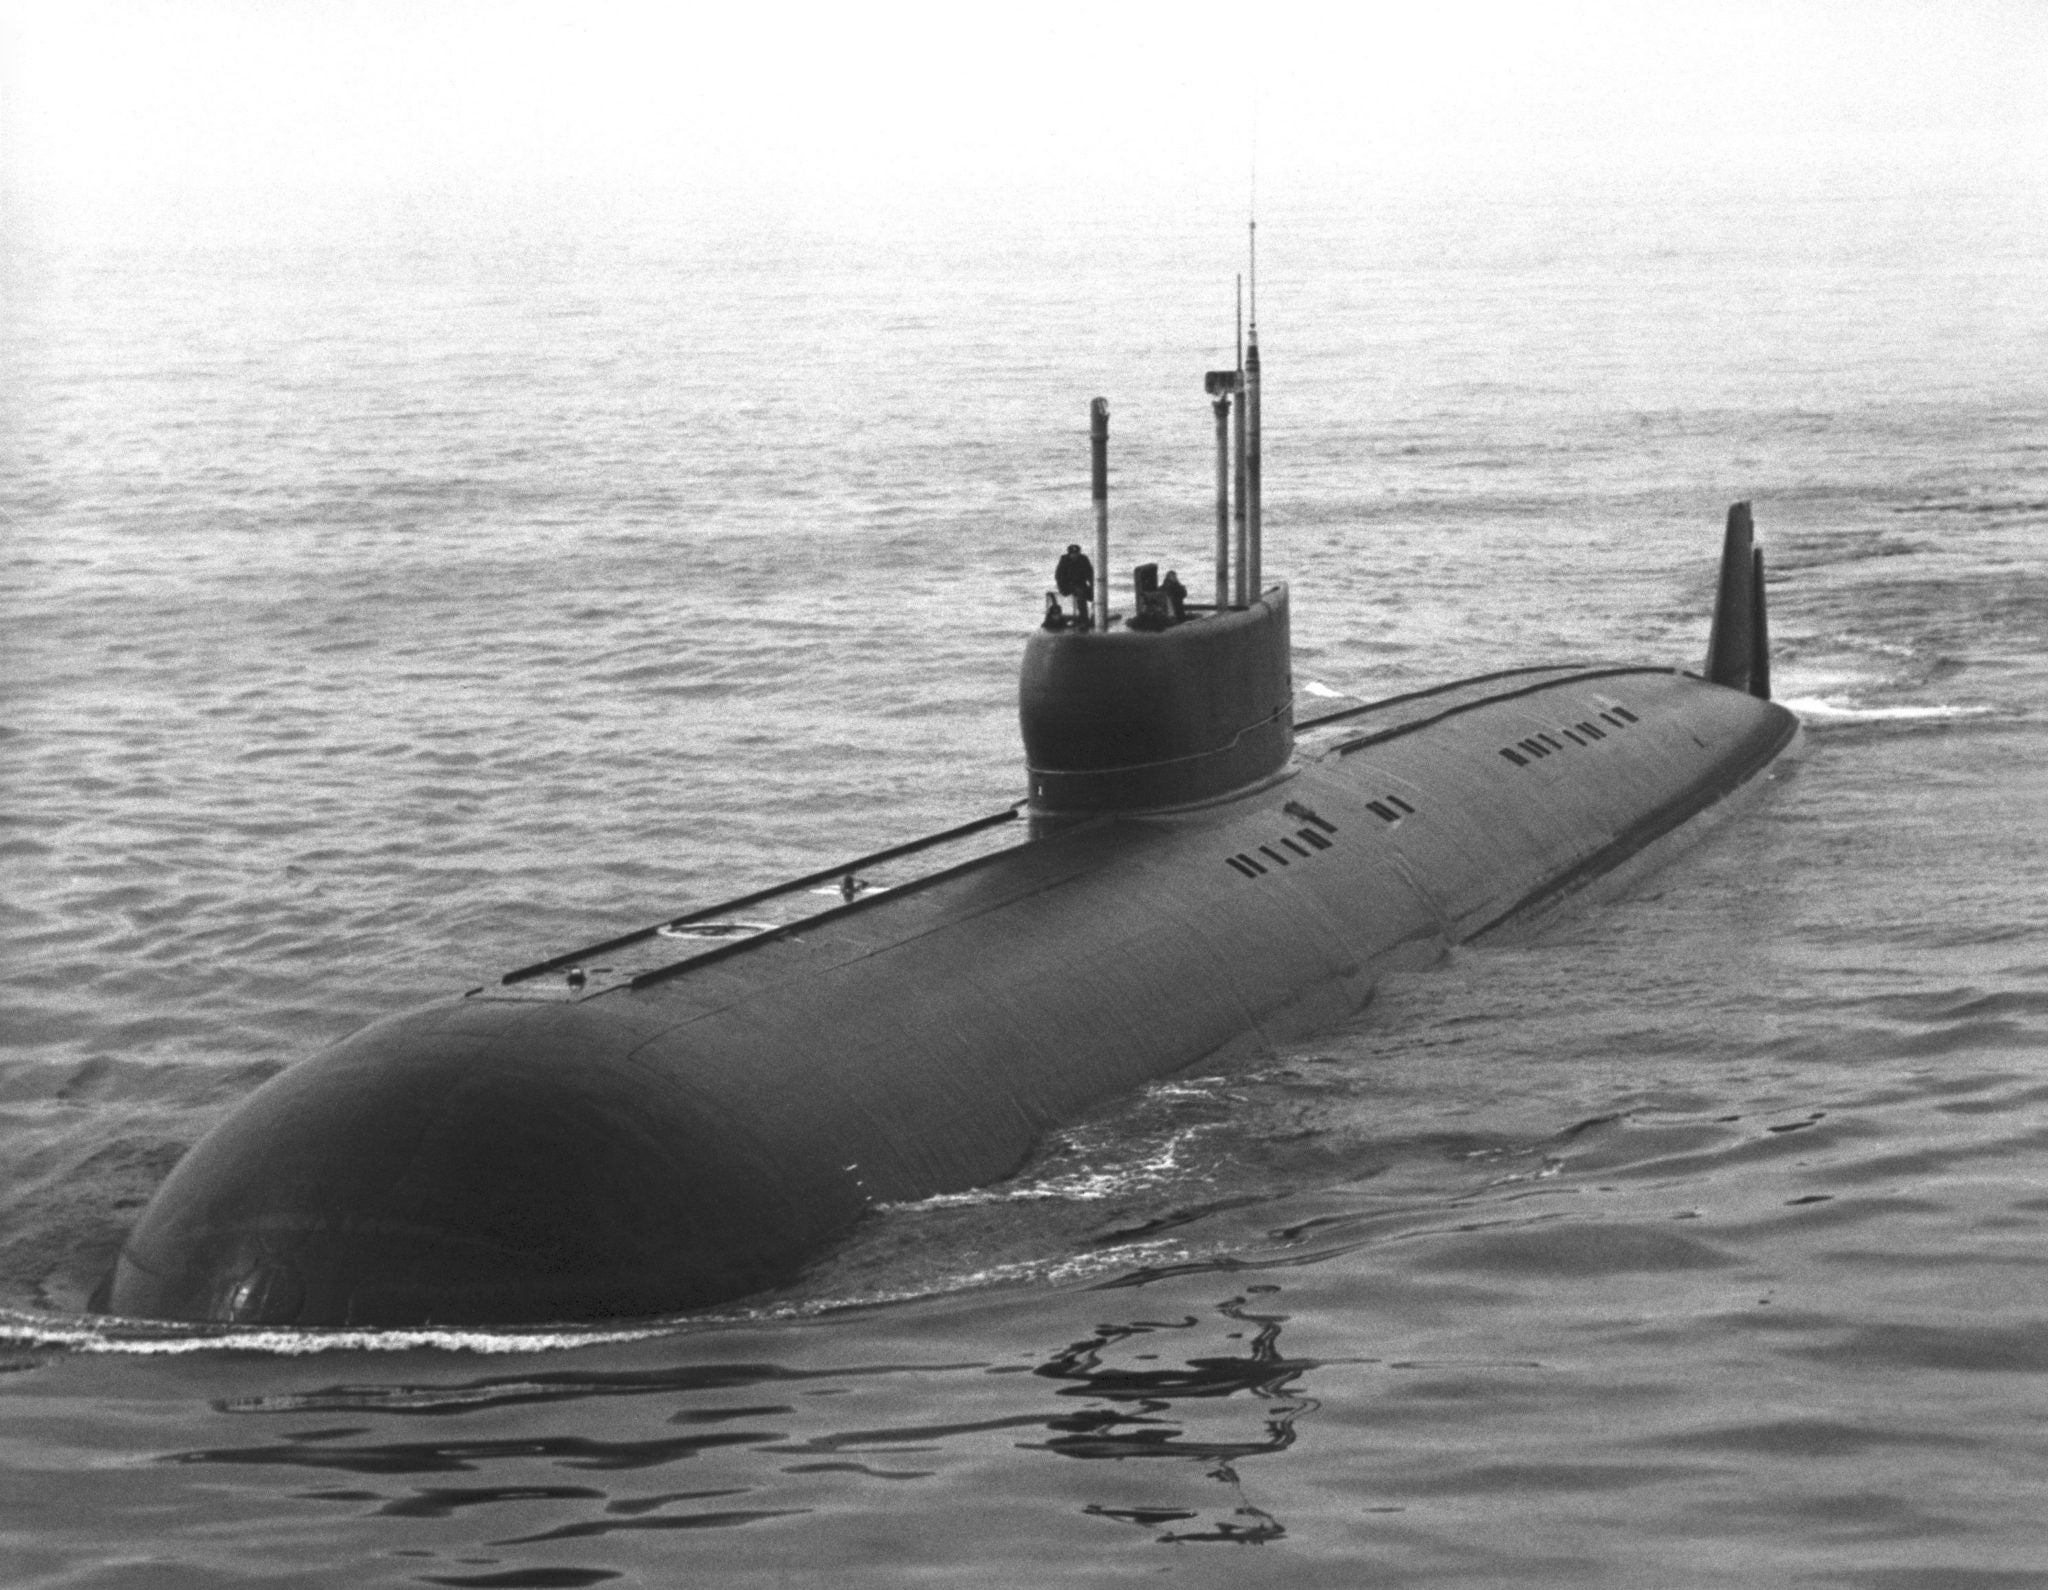 This may have been the fastest military submarine ever built